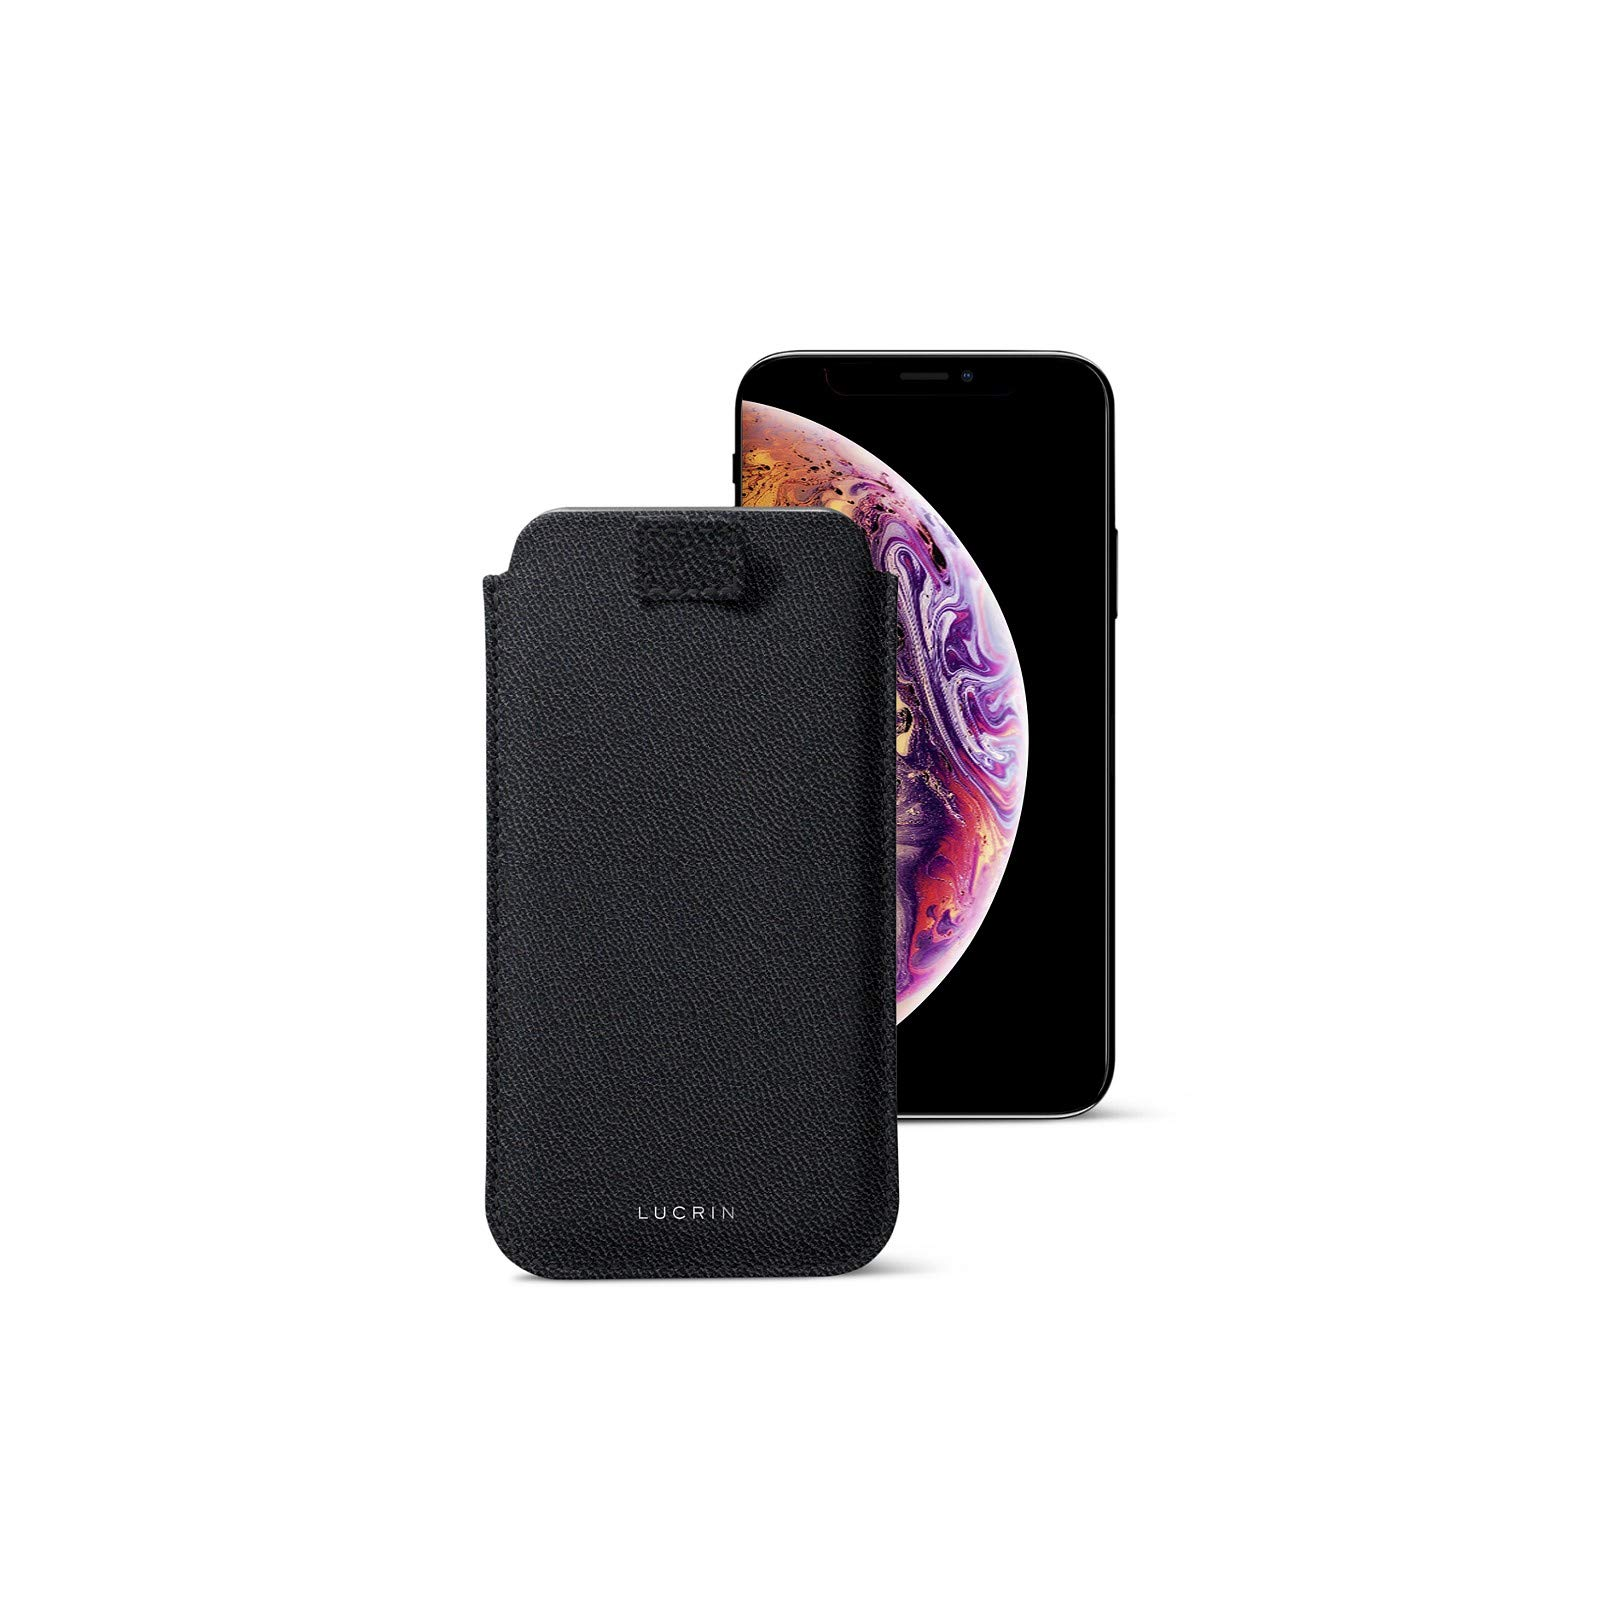 Lucrin - Pull Tab Slim Sleeve Case Compatible with iPhone Xs/iPhone X and Wireless Charging - Black - Goat Leather